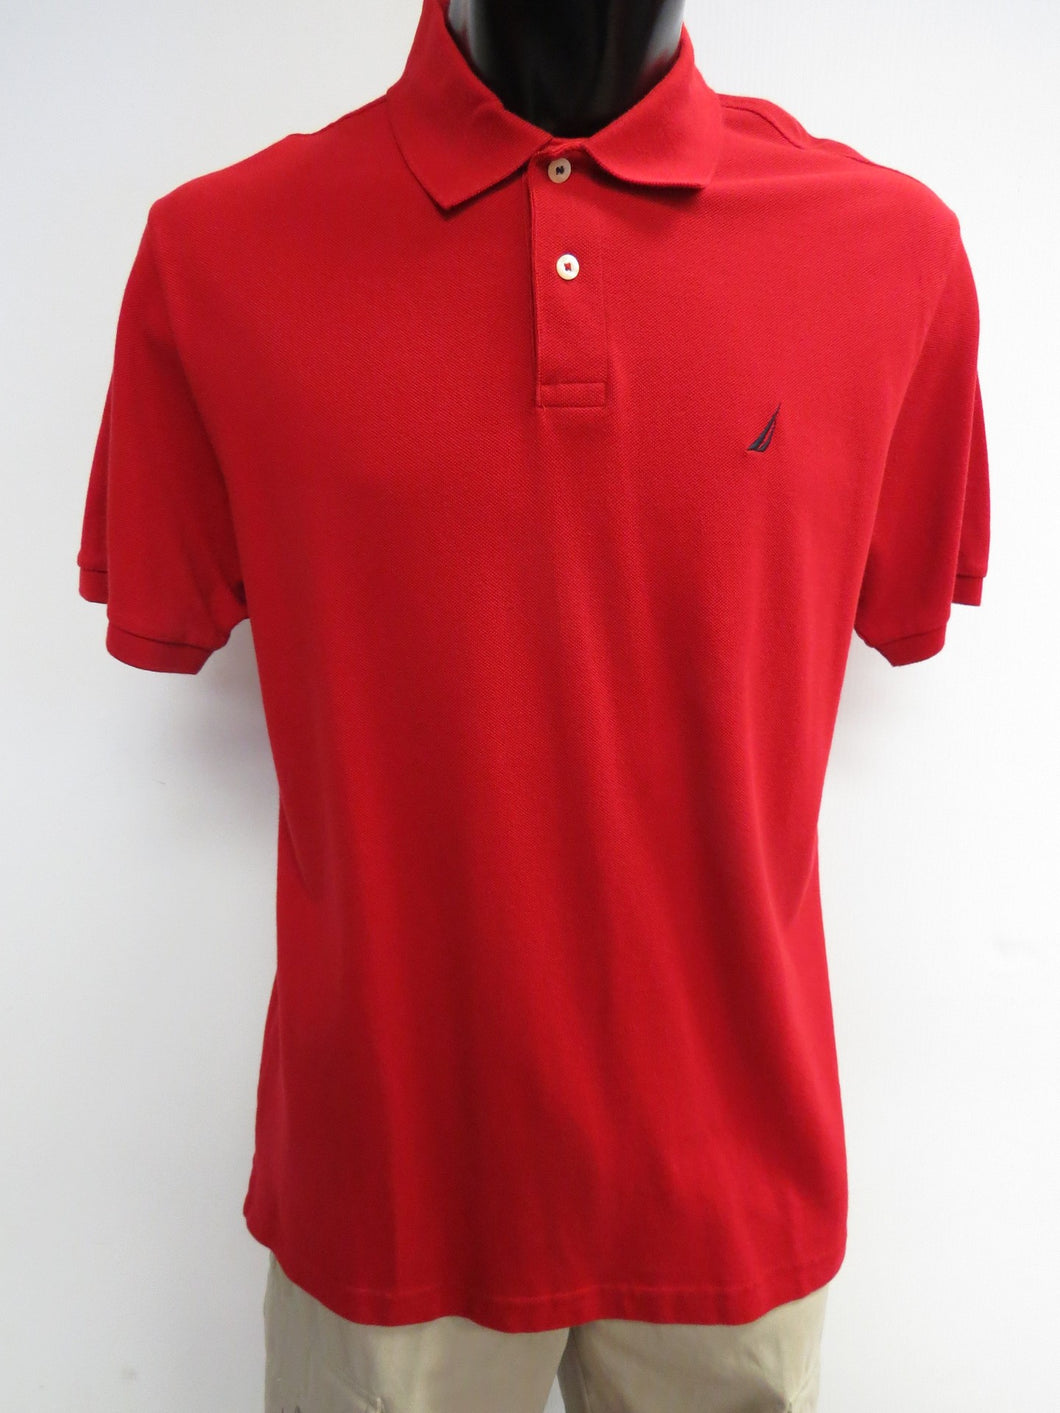 Nautica | K00809C | Polo T-Shirt | Nautica Red